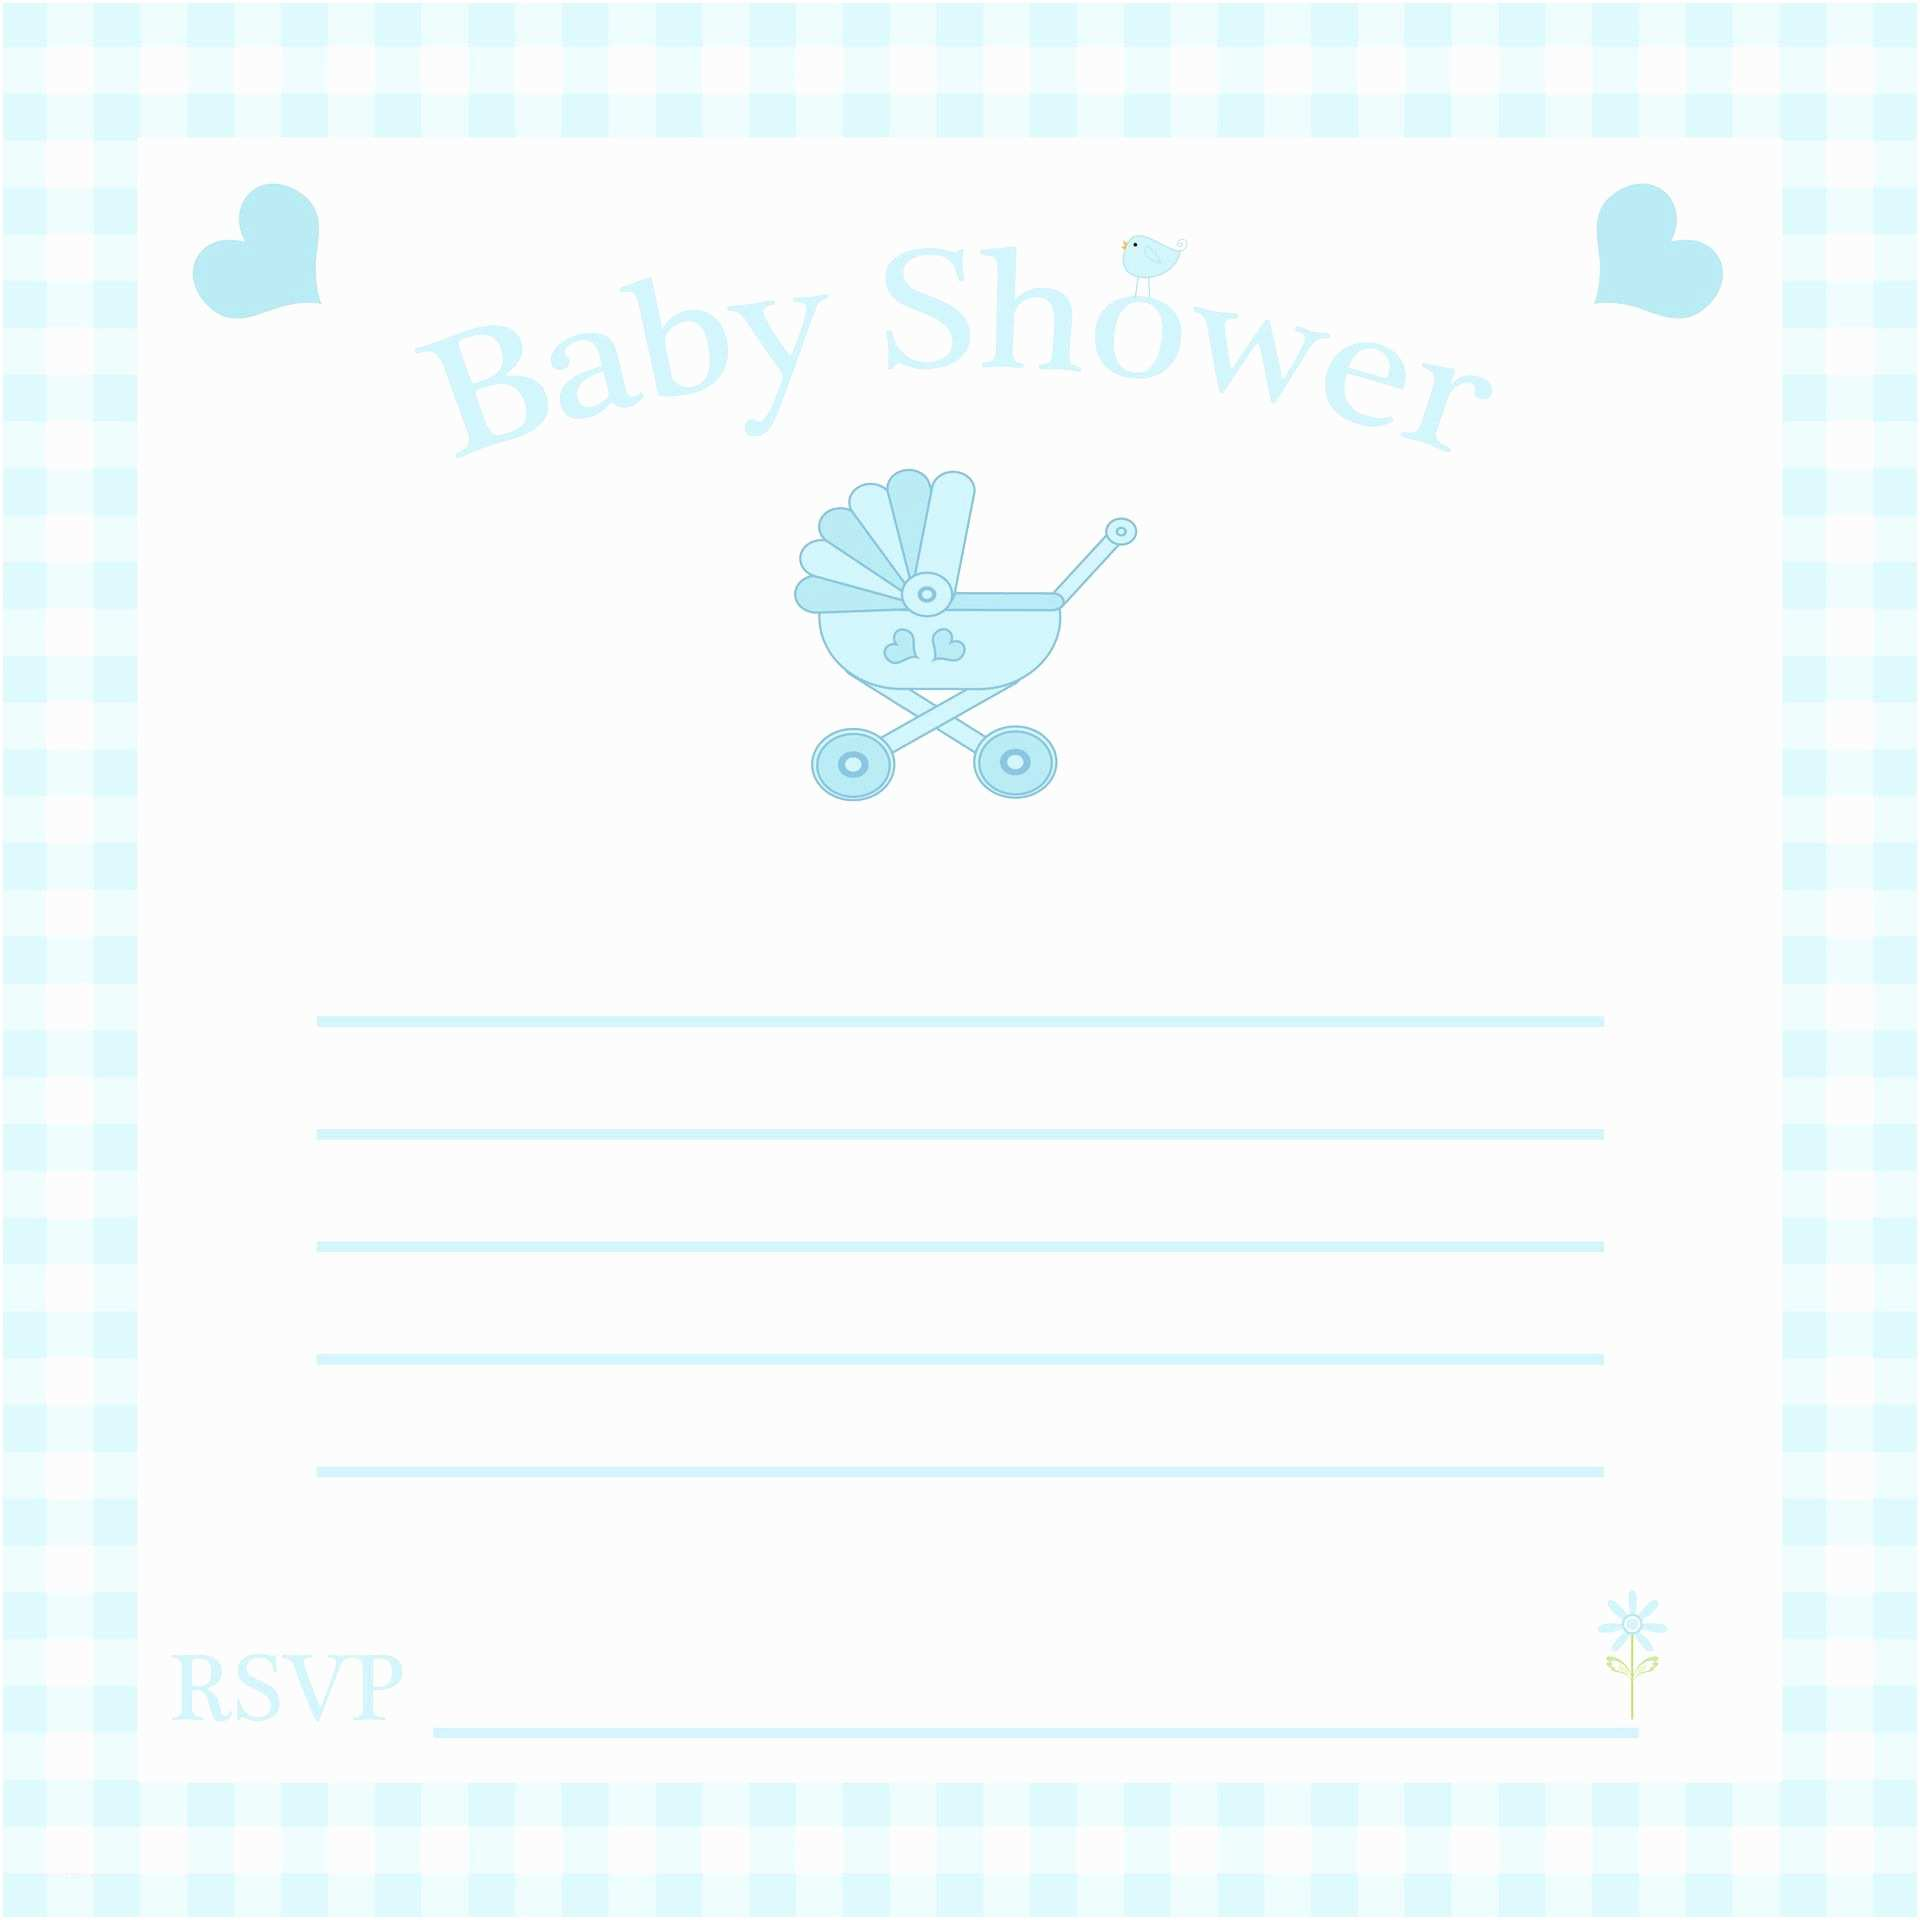 Baby Shower Invitations Templates Graduation Party Free Baby Invitation Template Card